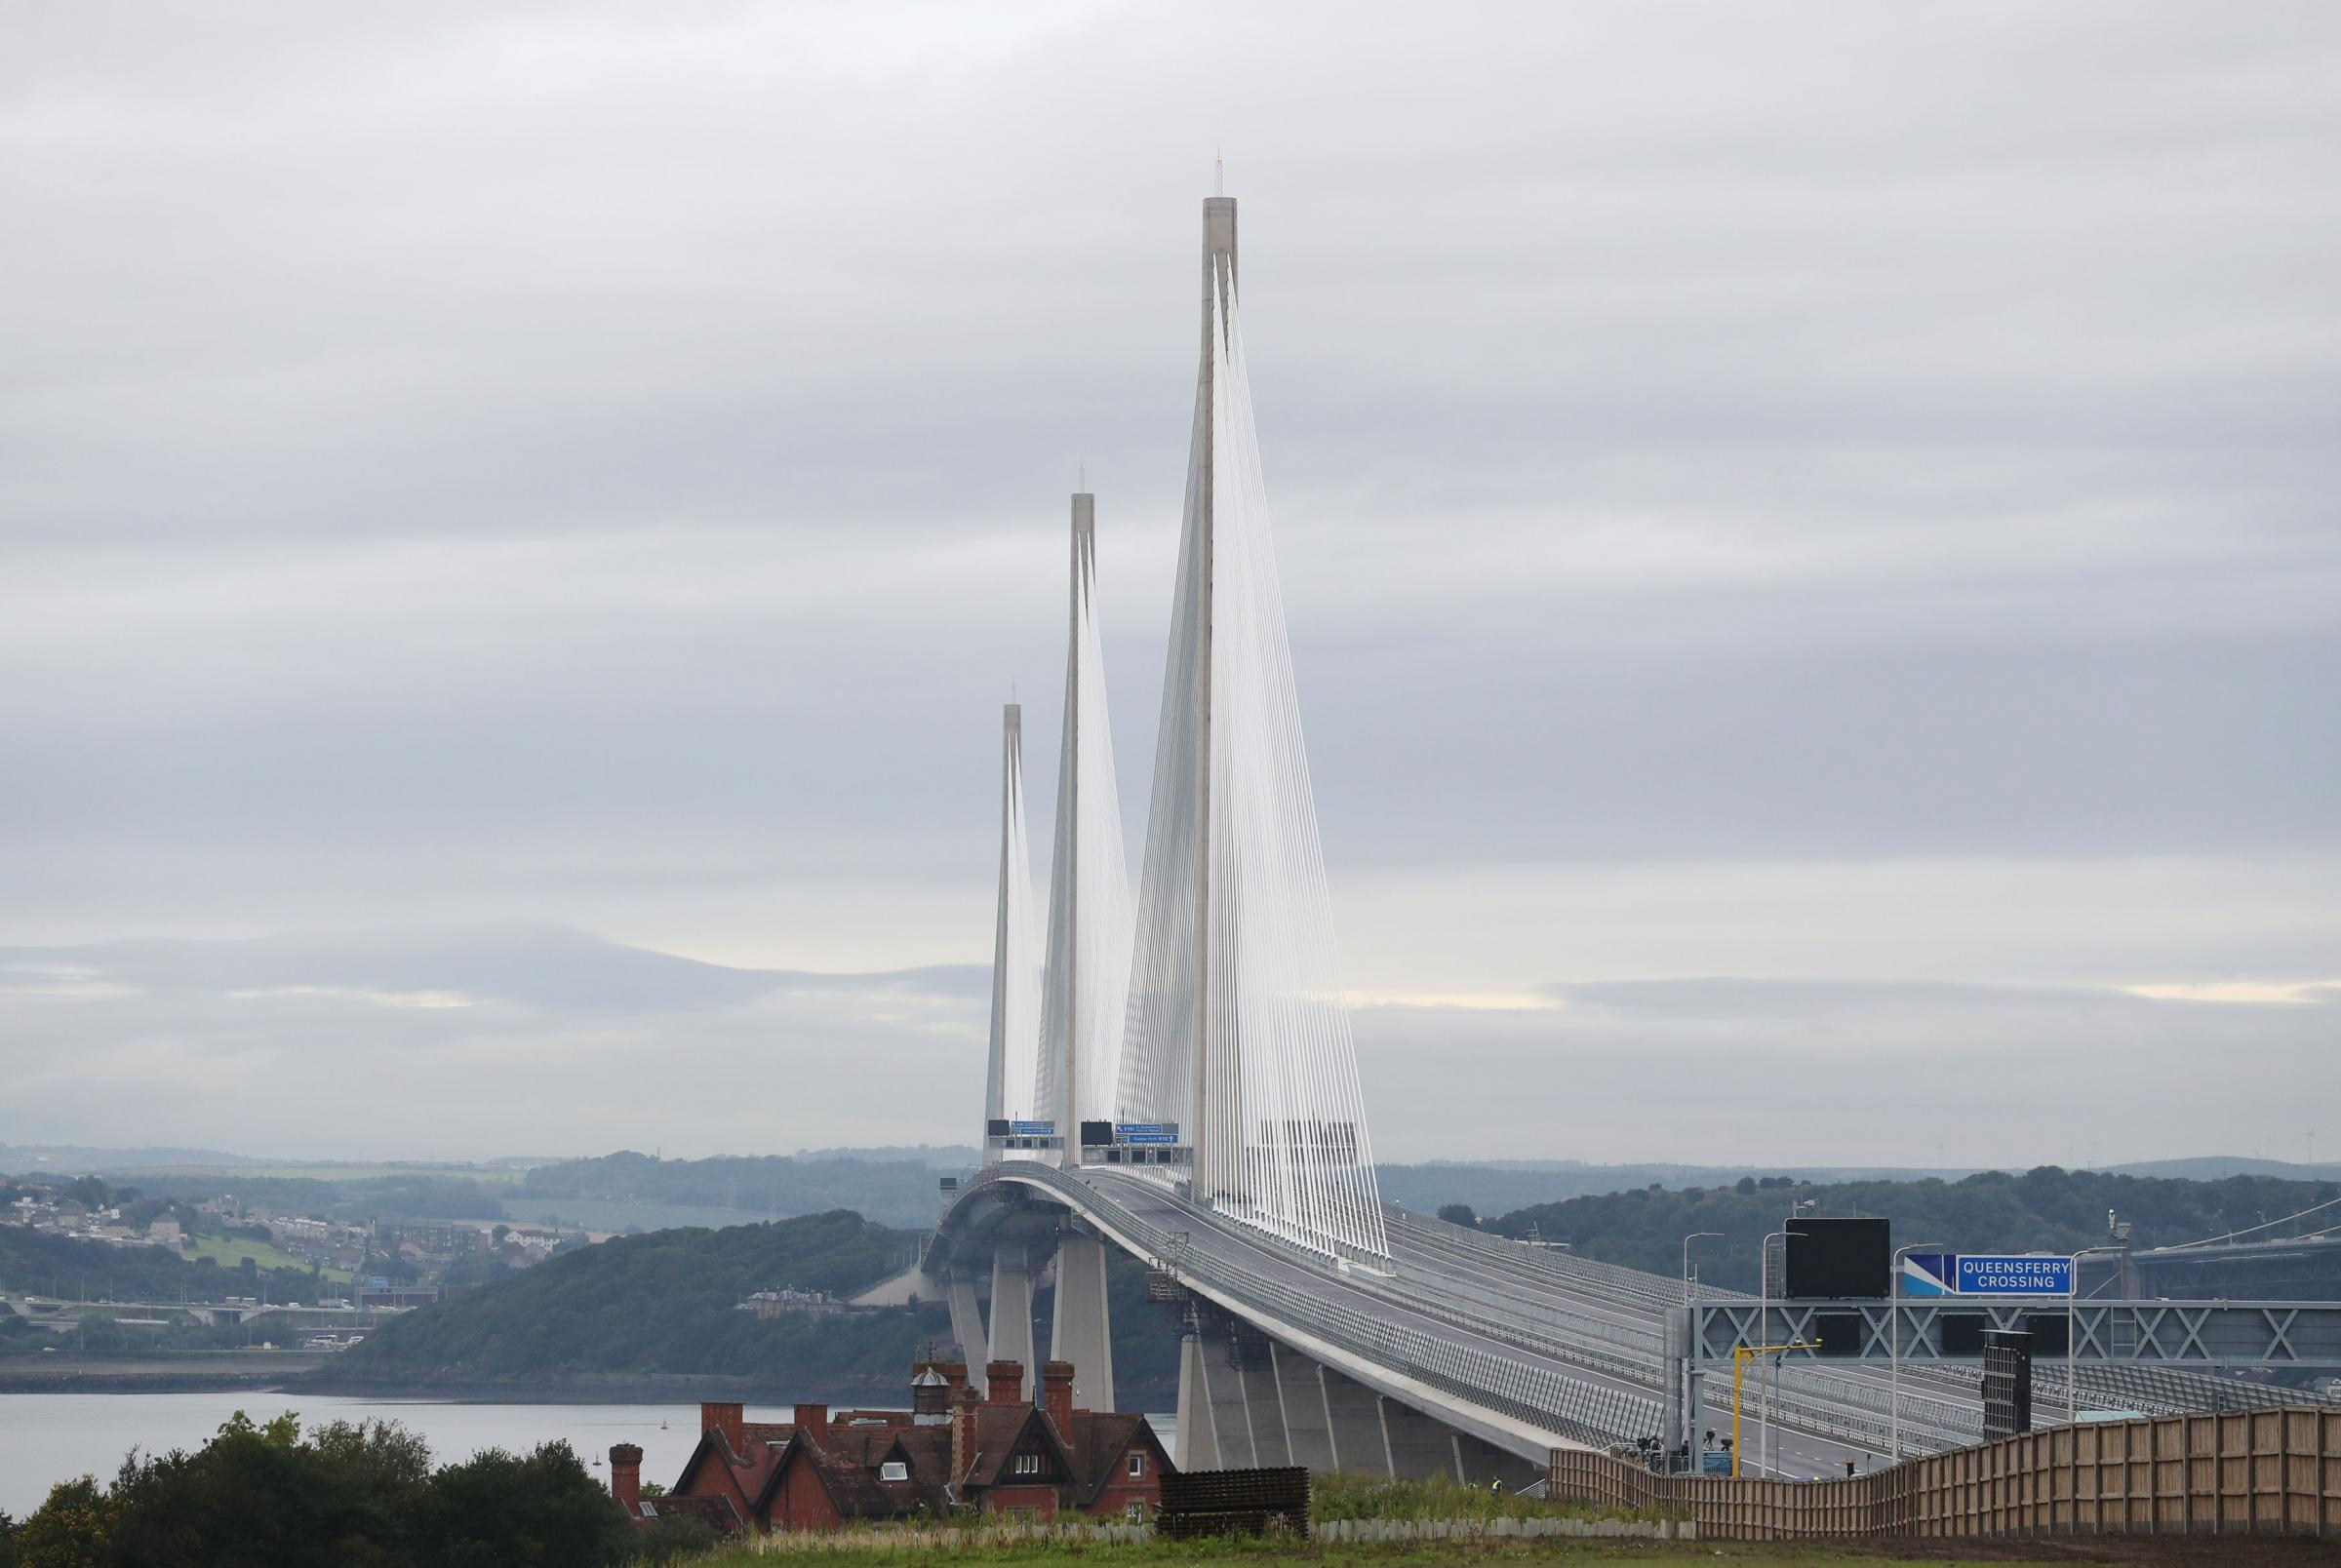 Incredible feat ... and the rest is not bad either. The new Queensferry Crossing